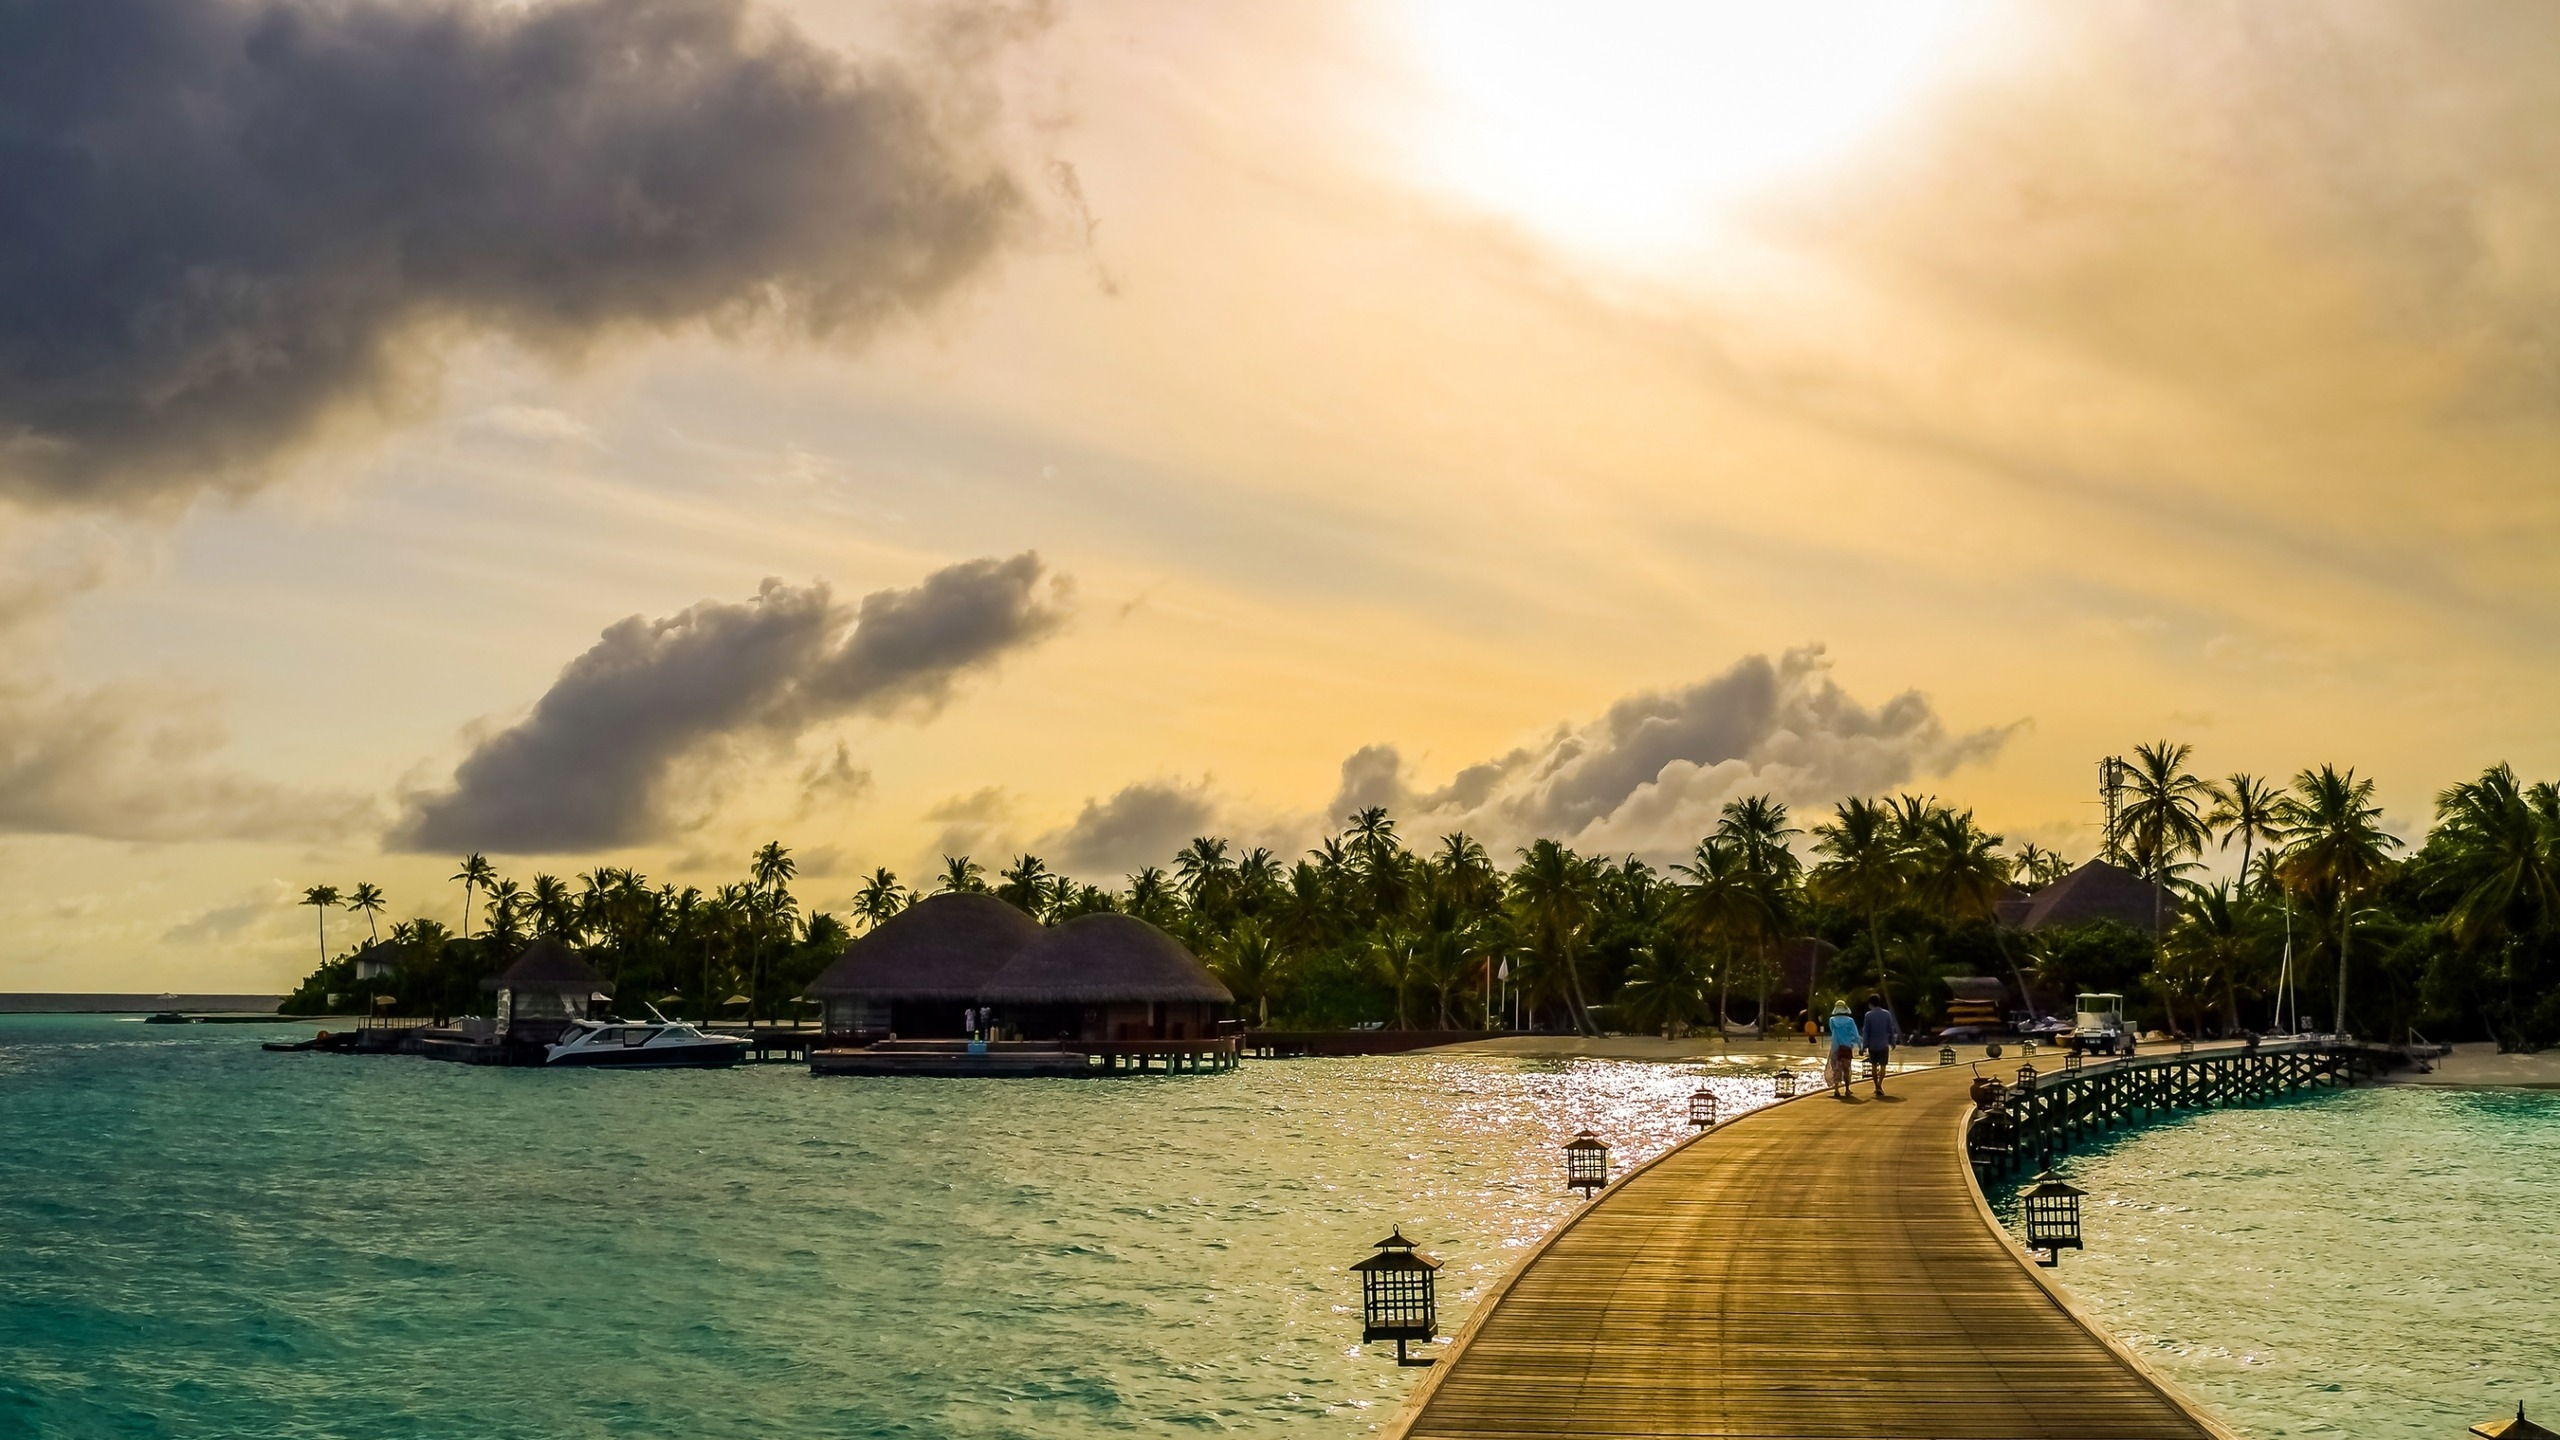 Exotic Maldives Beach for 2560x1440 HDTV resolution